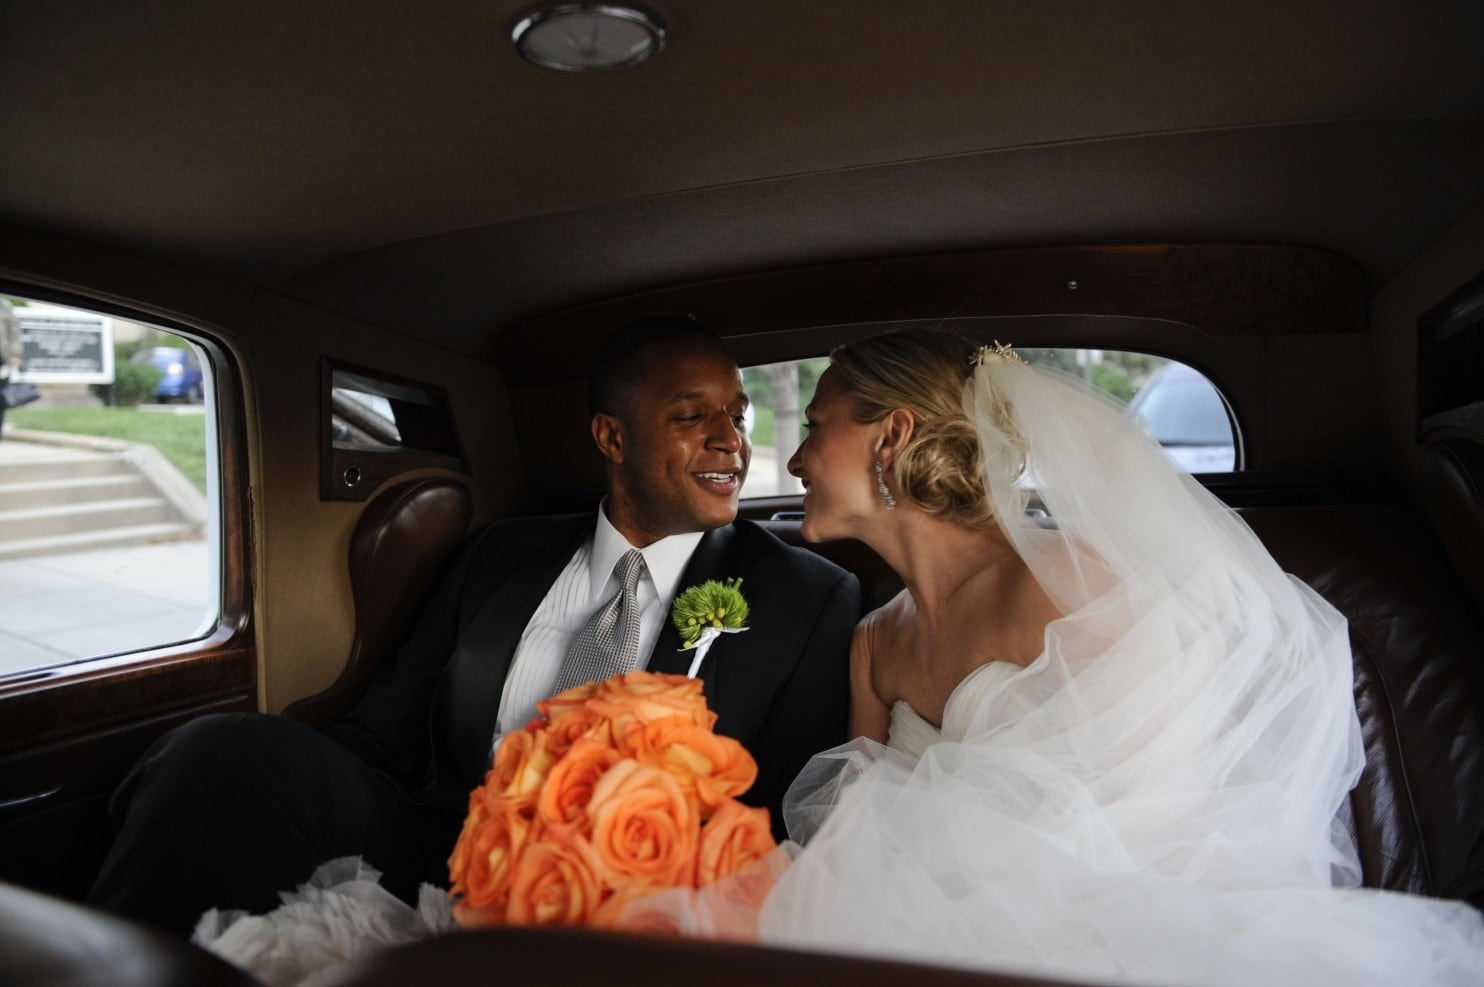 Craig Melvin and his wife Lindsay Czarniak returning home after hosting a grand wedding ceremony. The bride and groom are looking adorable together.